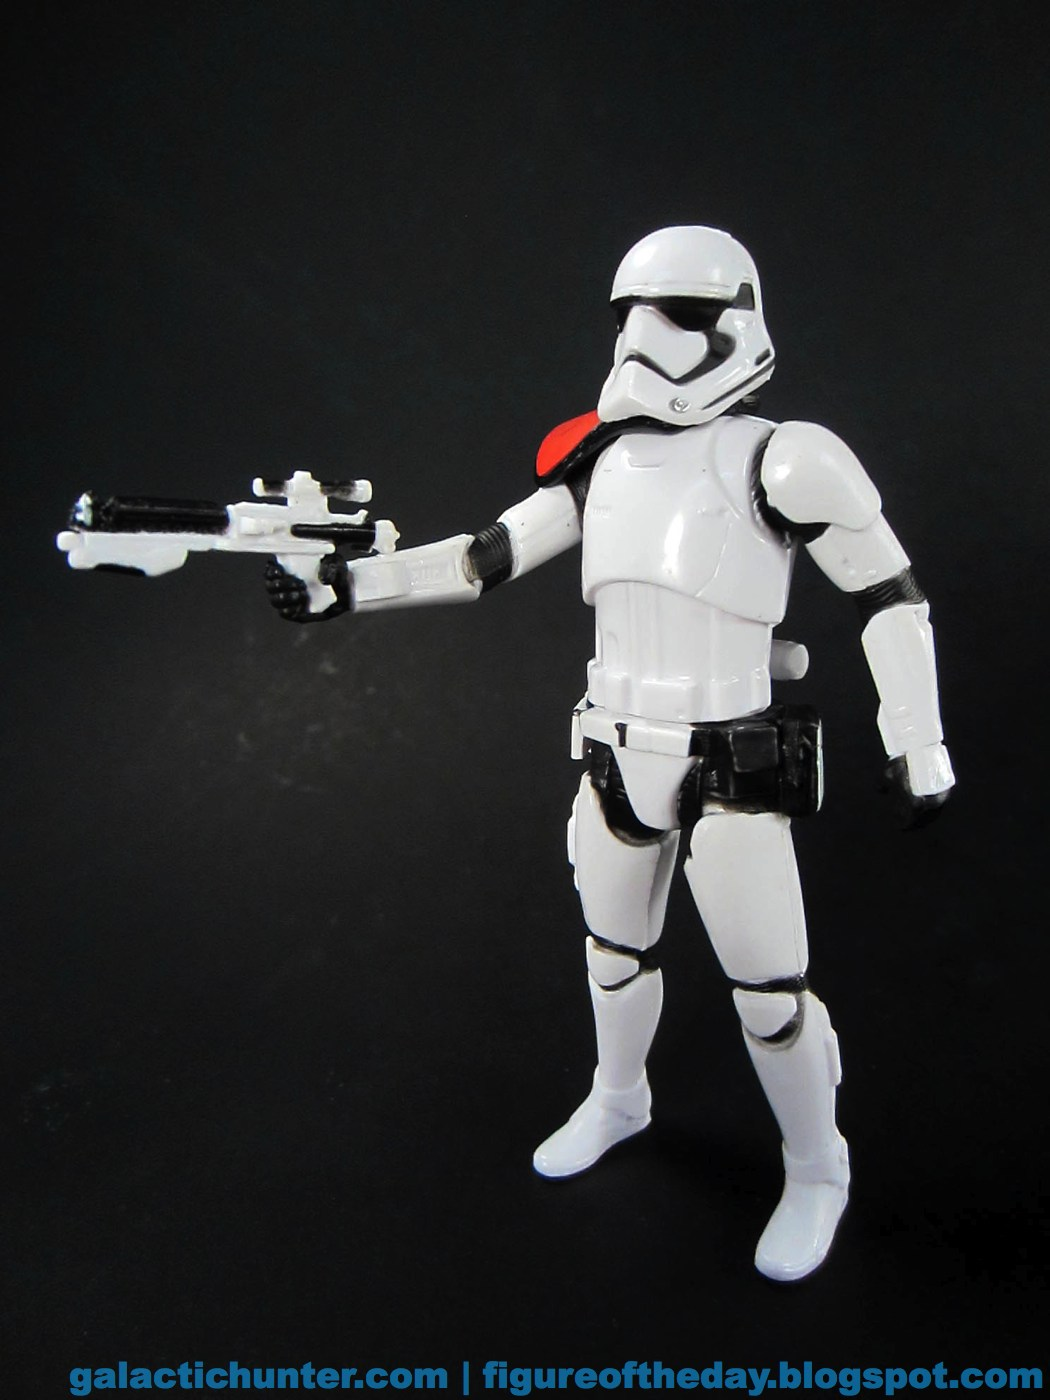 Galactic Hunter S Star Wars Figure Of The Day With Adam